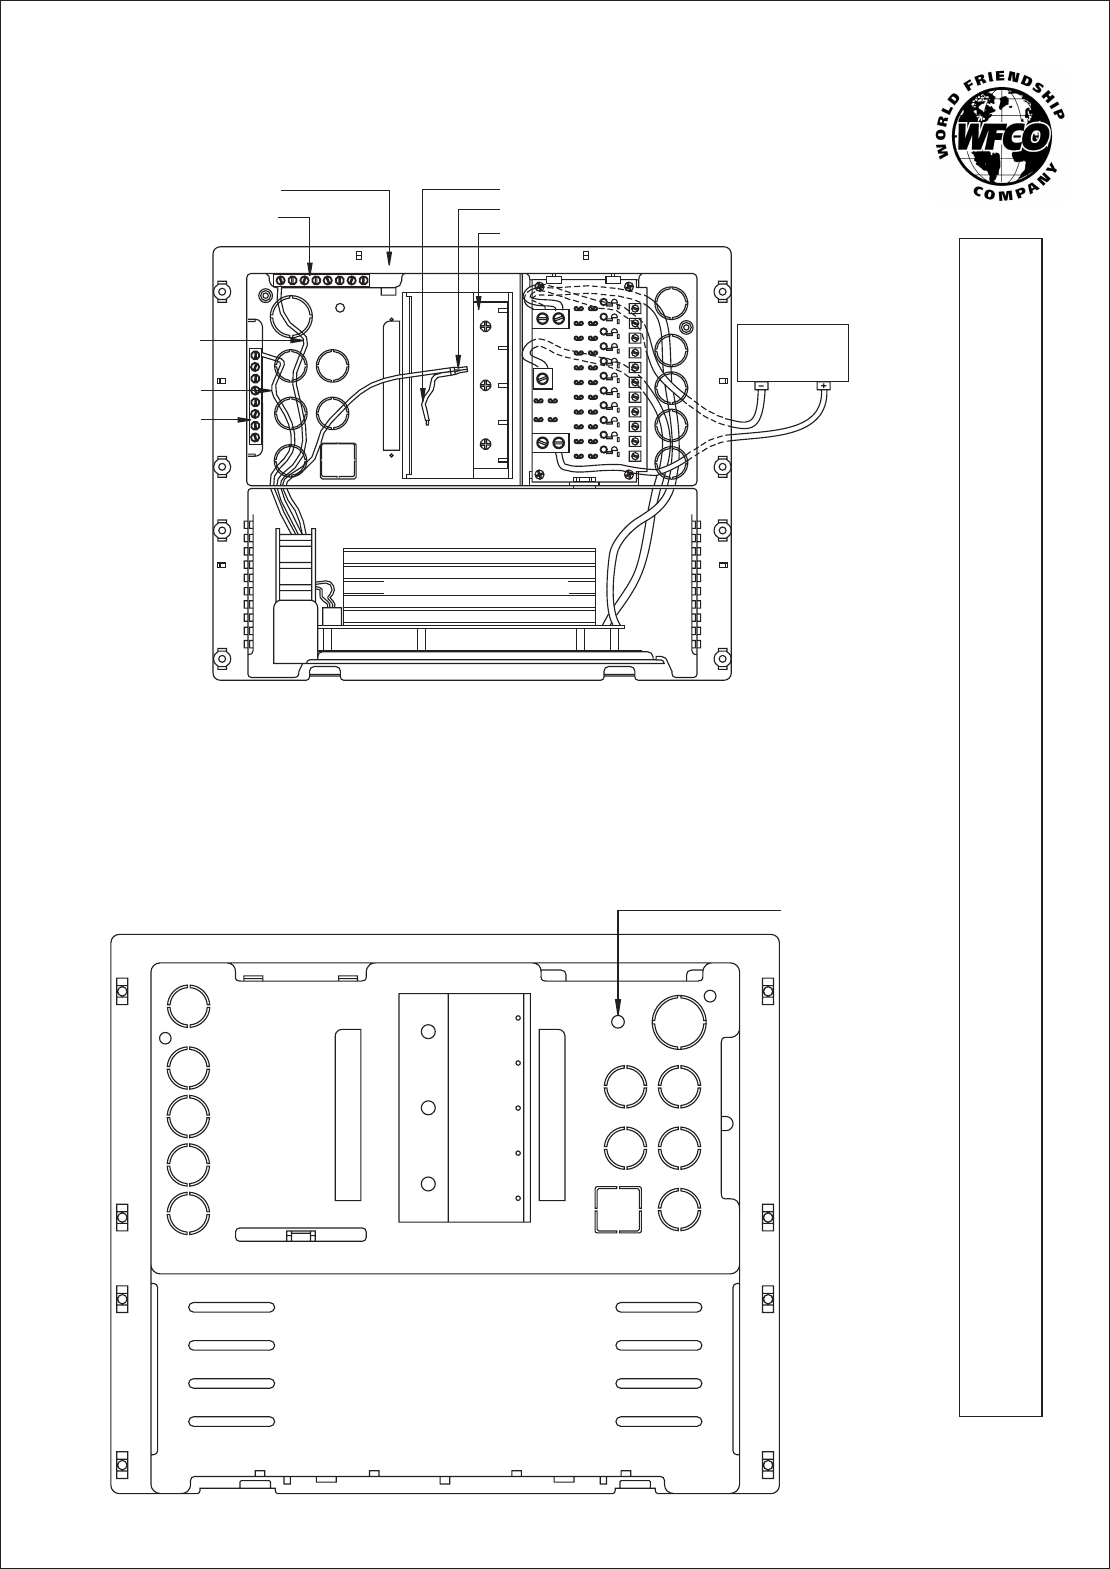 Wfco 8955 Converter Wiring Diagram from usermanual.wiki